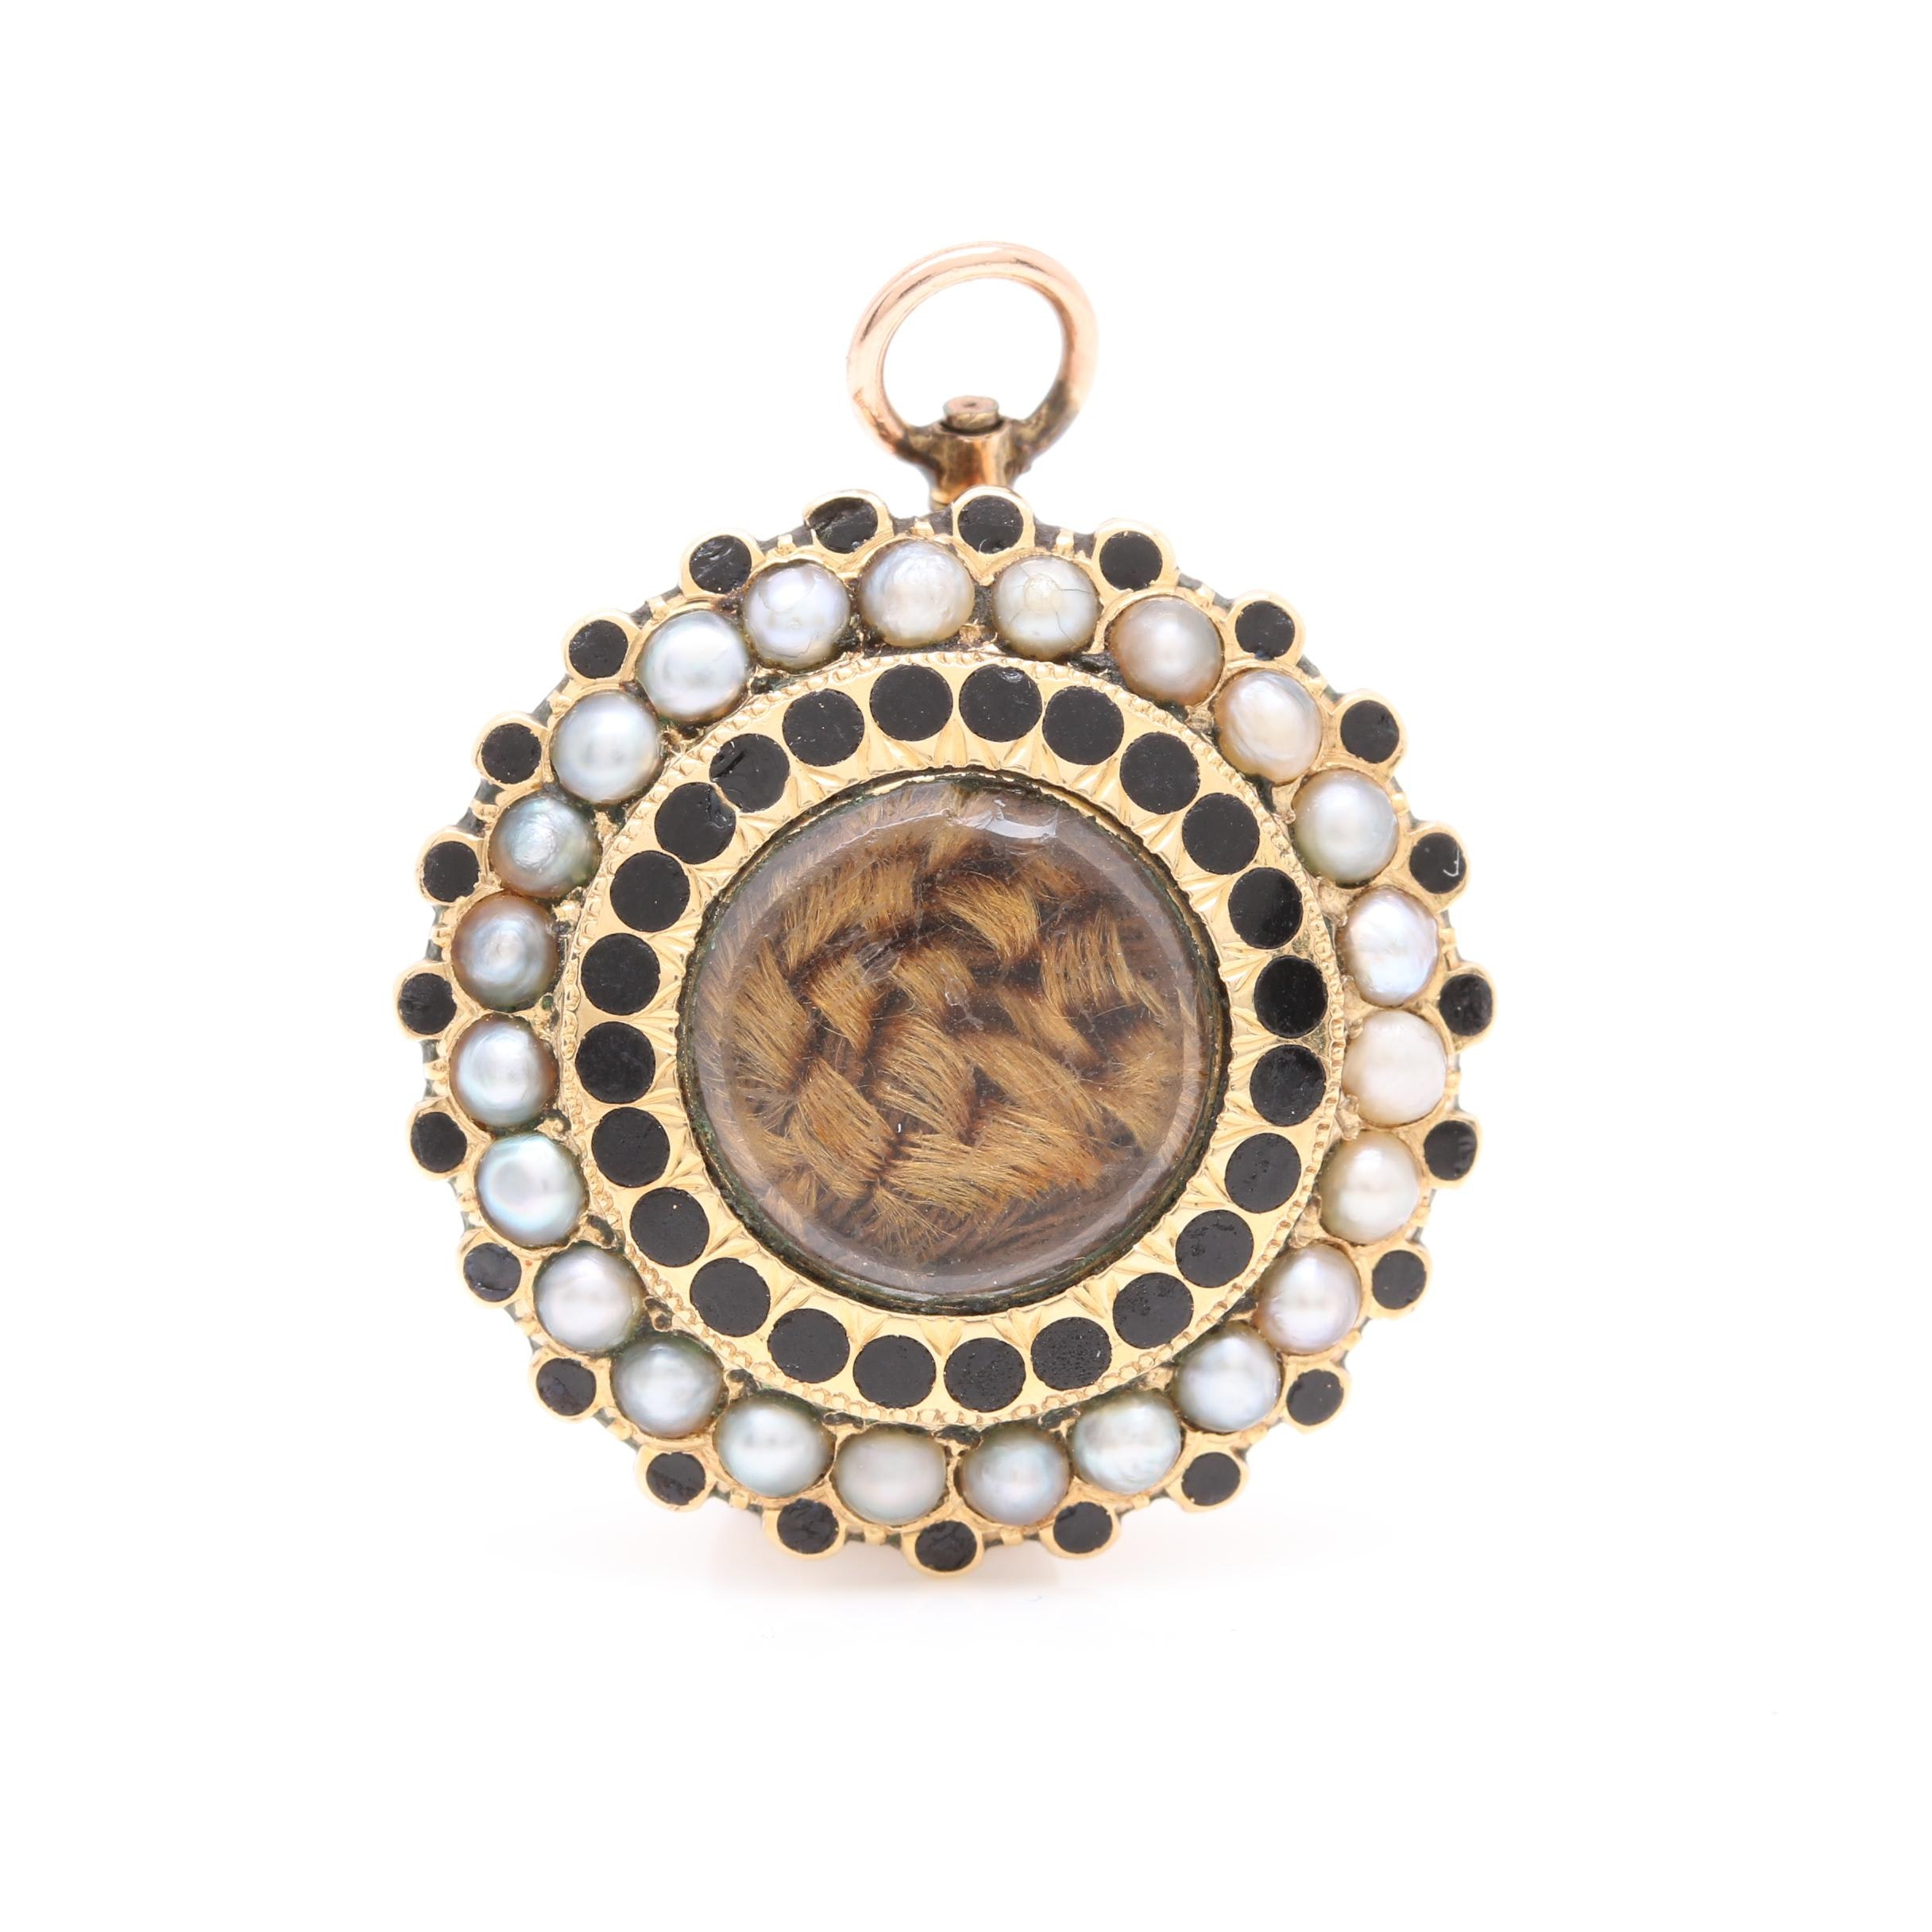 14K Yellow Gold Seed Pearl and Enamel Mourning Pendant